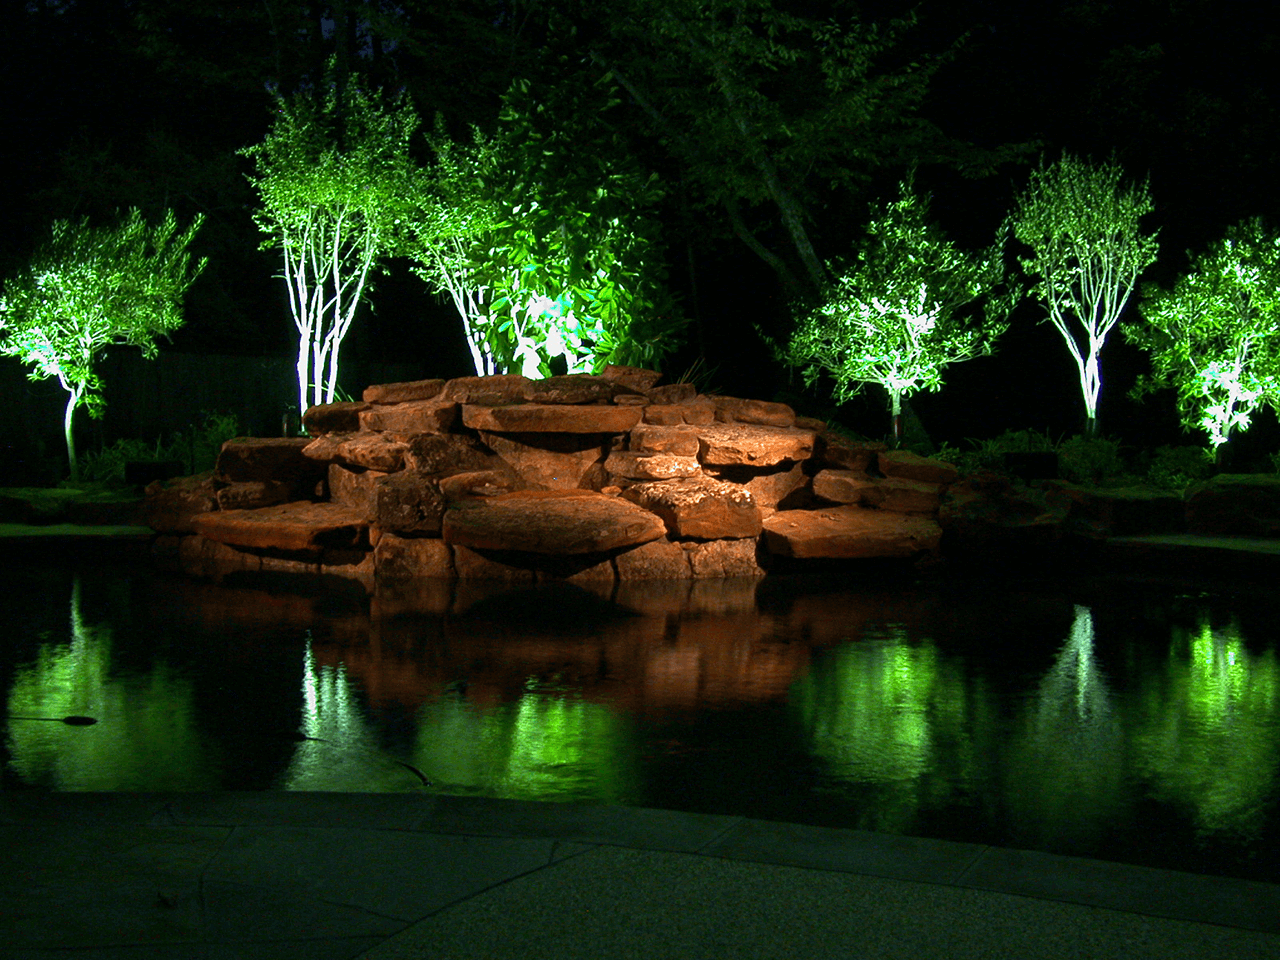 A swimming pool with reflections of the uplighting on the saplings behind the pool